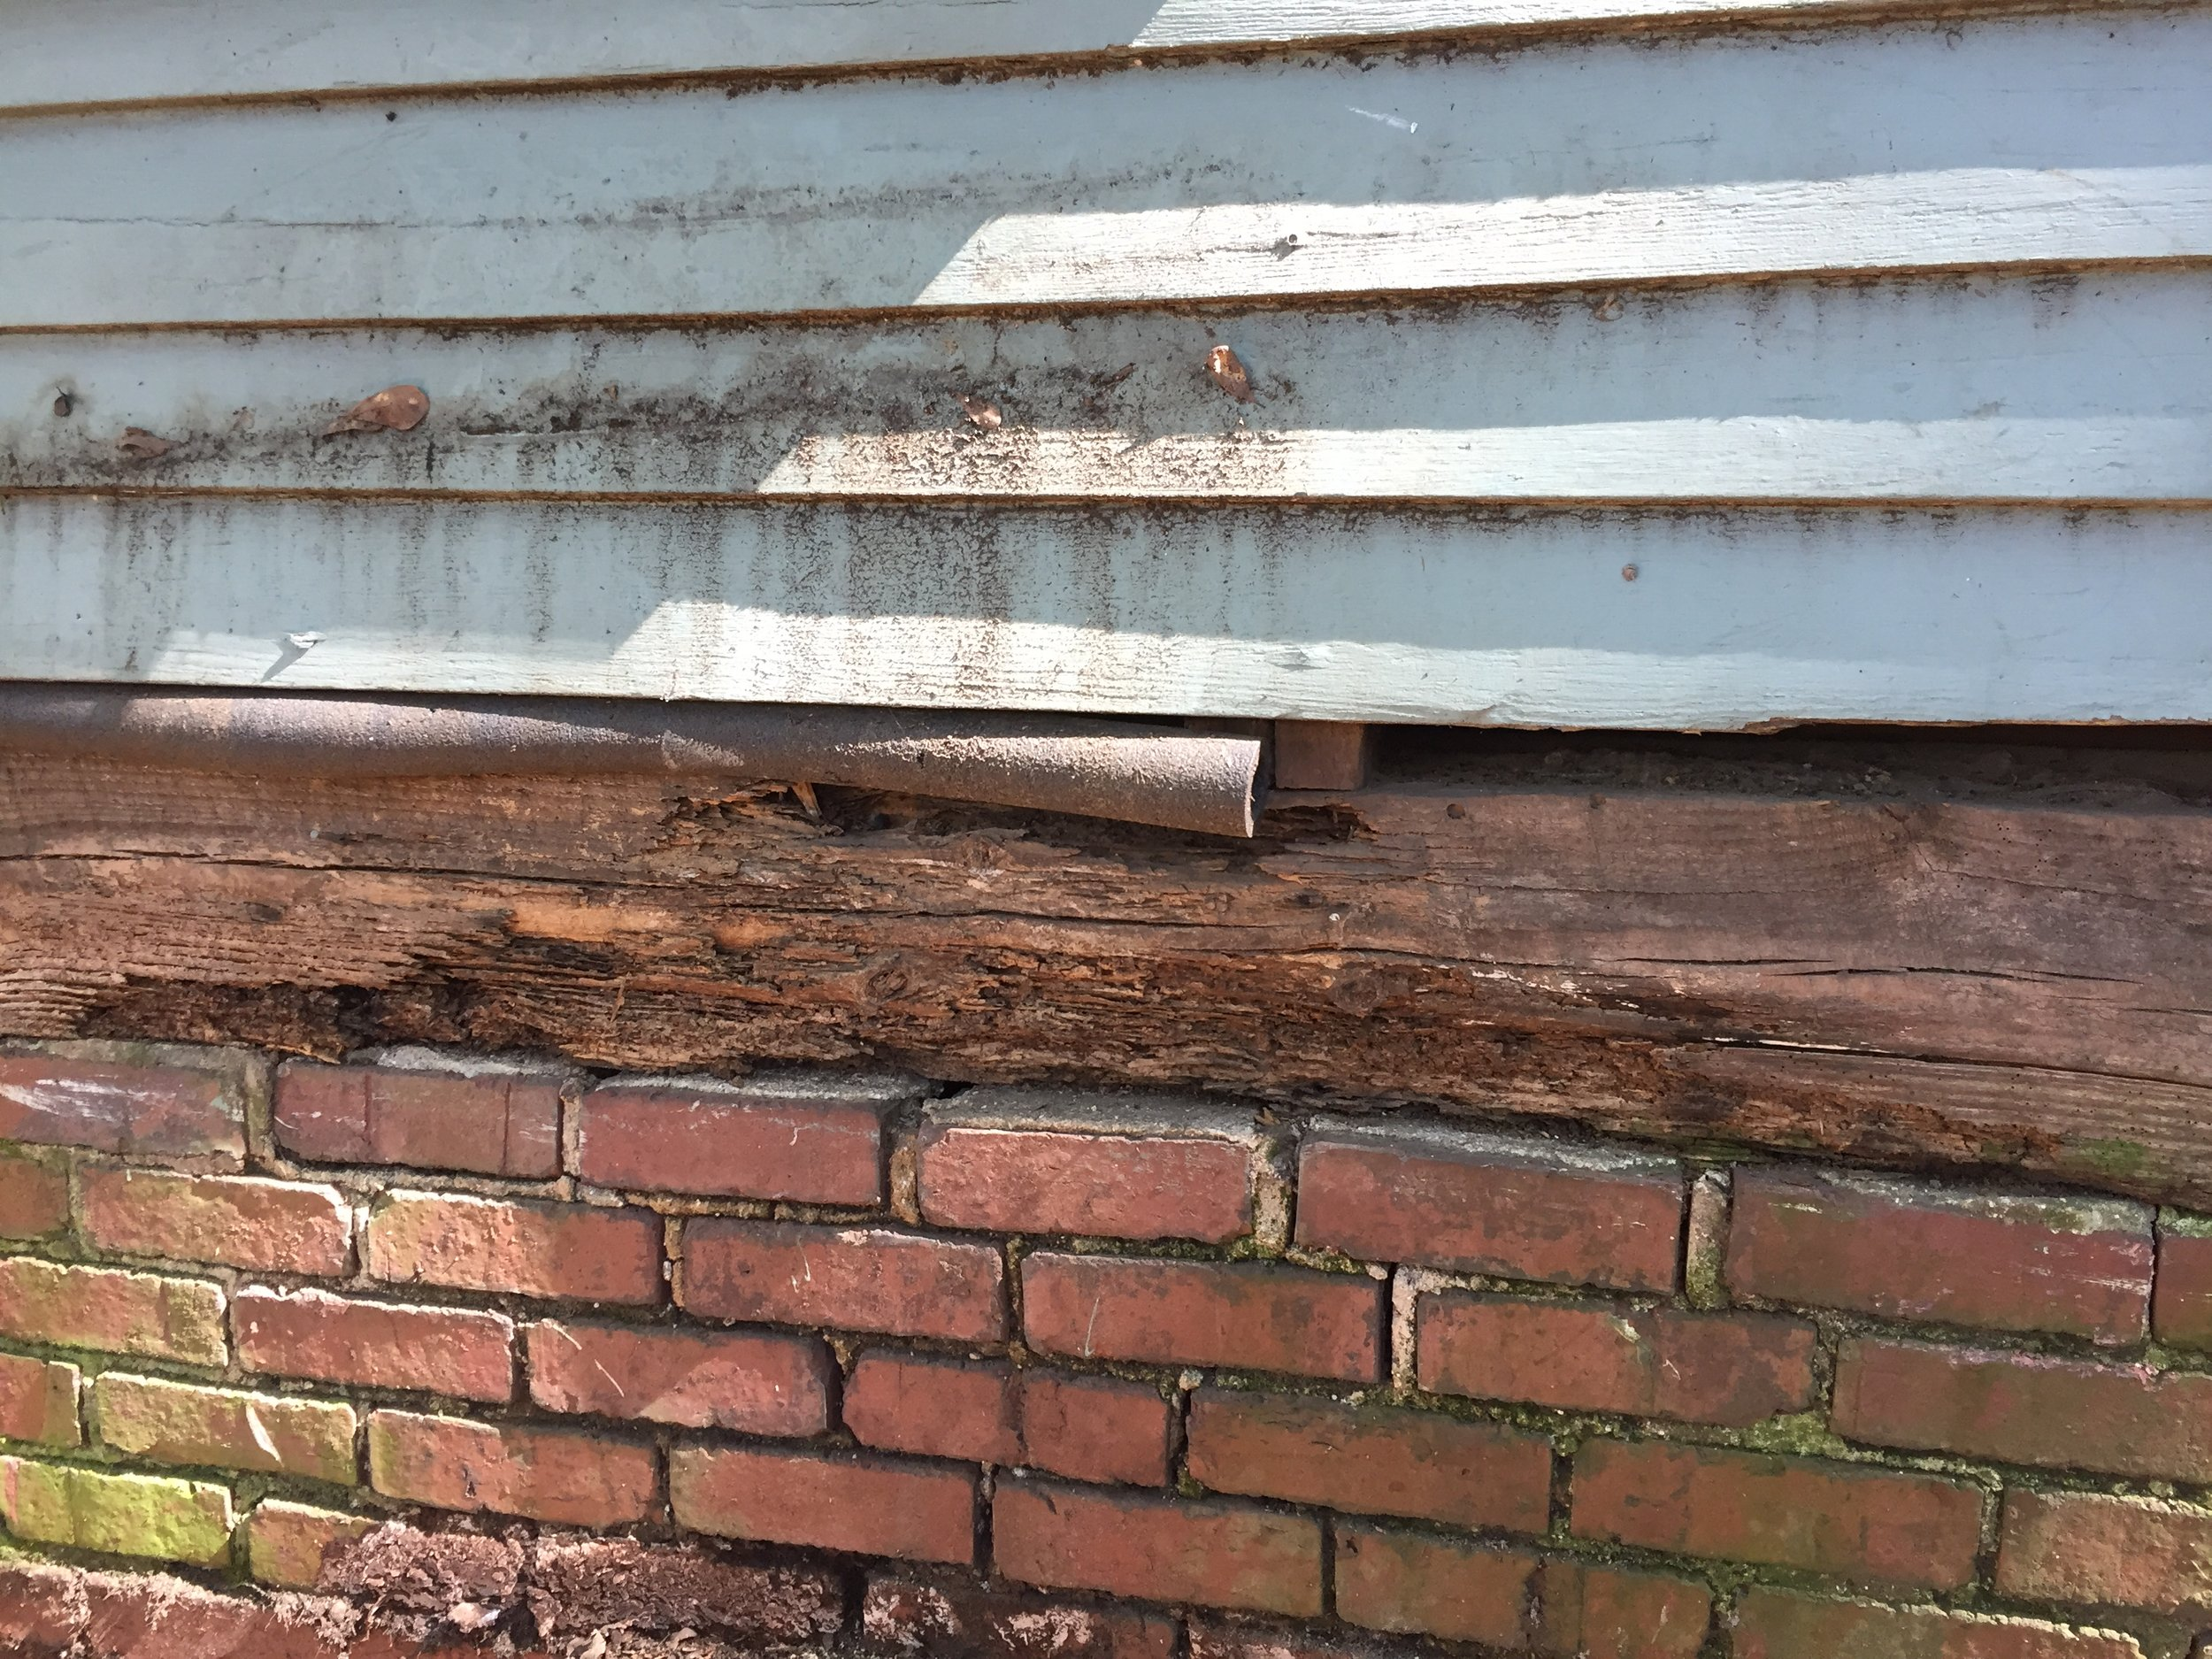 You can see all of the termite damage in the floor up the wall beam and into the ceiling.